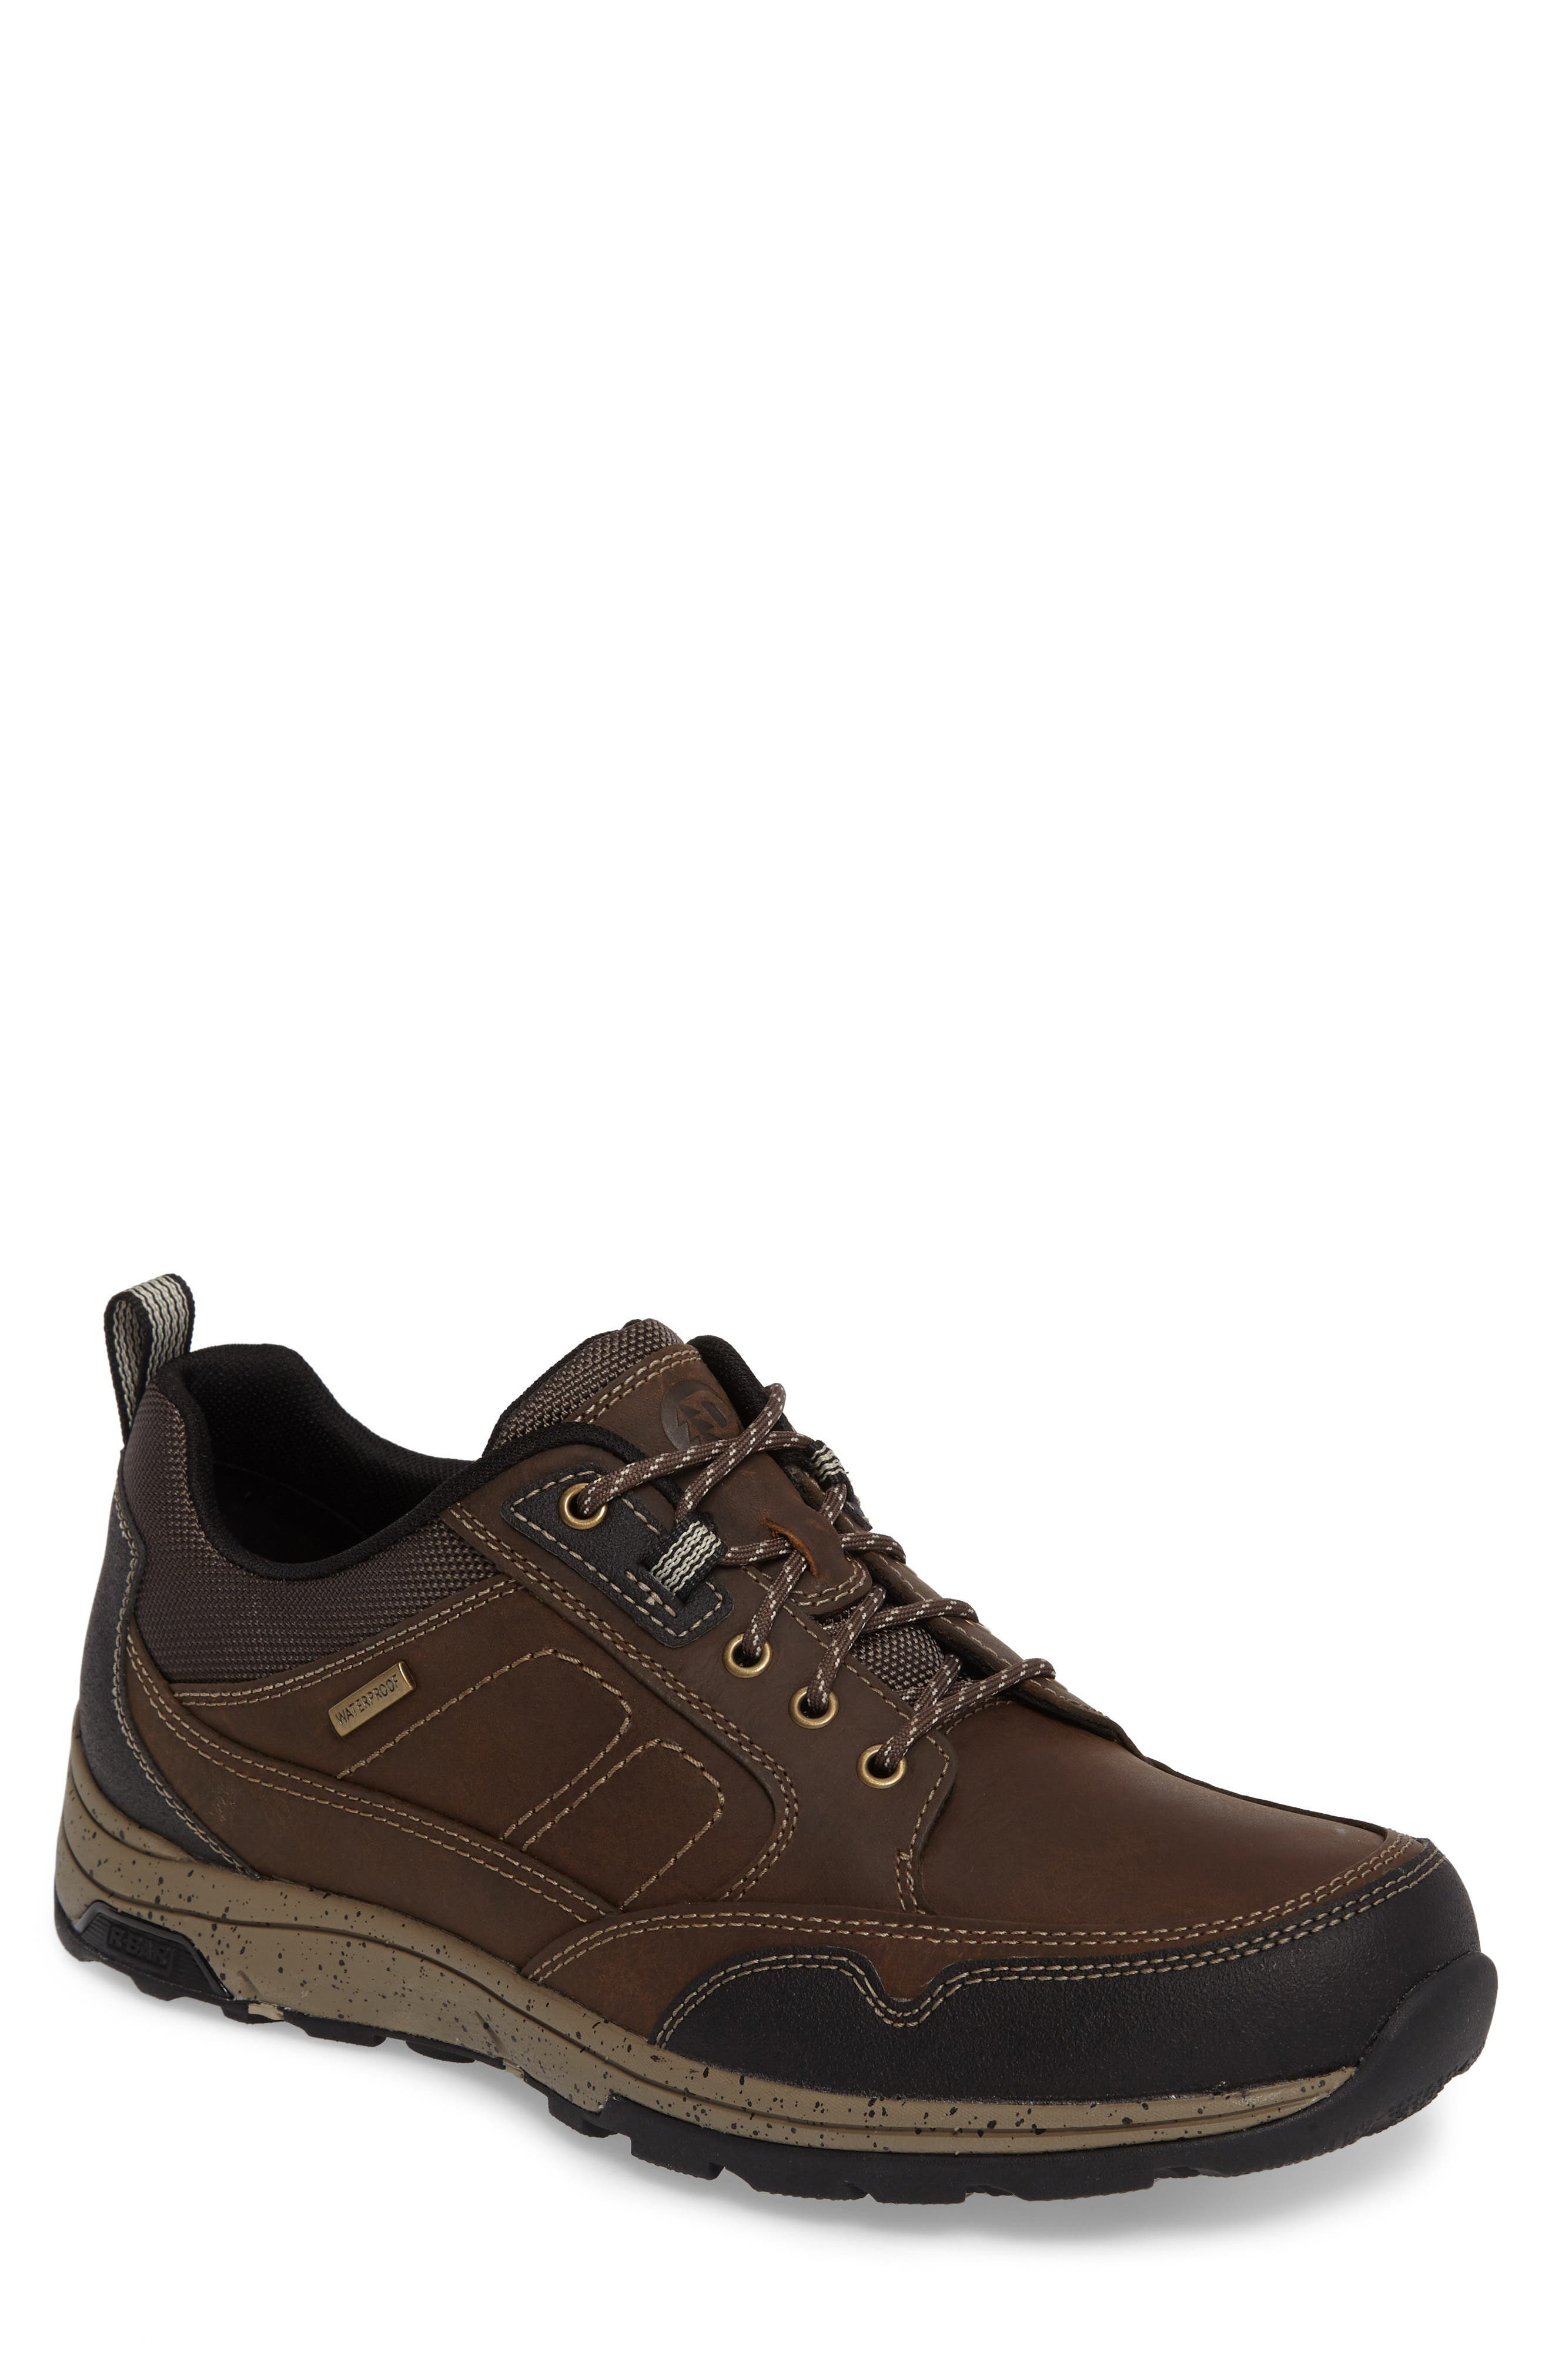 Trukka Hiking Shoe,                         Main,                         color, TAUPE